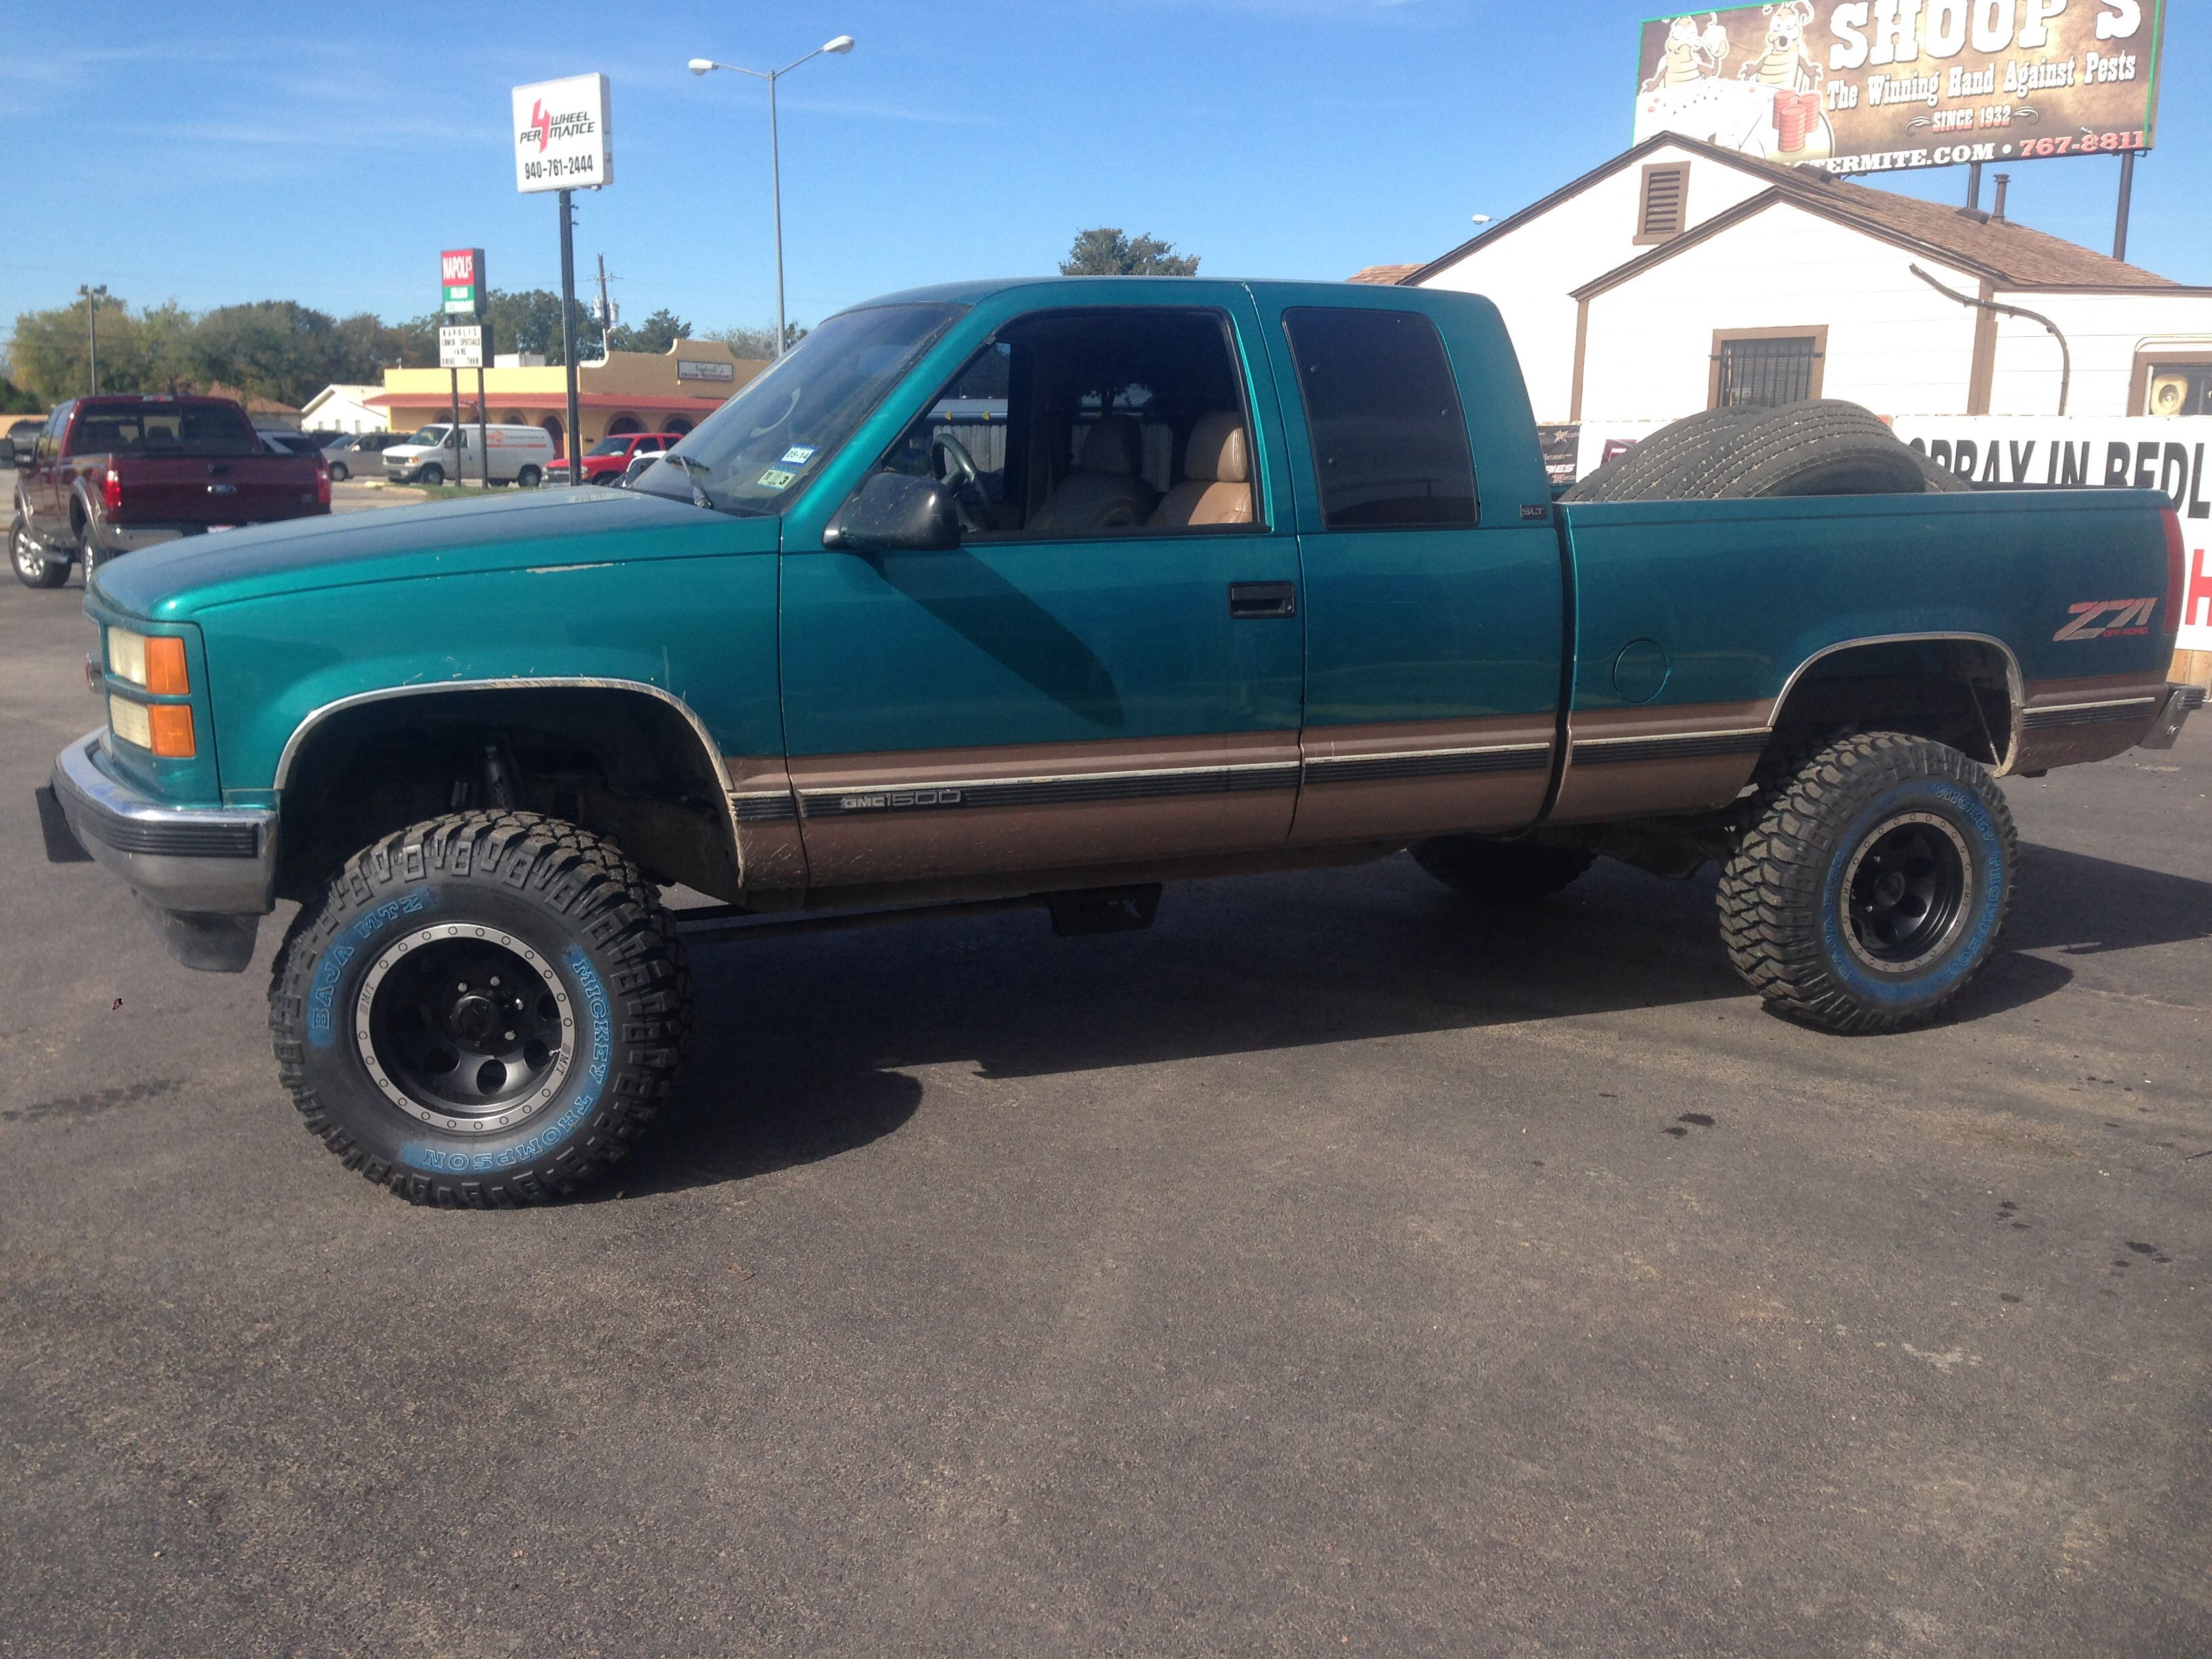 1995 Gmc 1500 Z71 6 Rough Country Lift 16 Mickey Thompson Wheels 33 Mickey Thompson Tires Chevy Trucks Silverado Chevrolet Trucks Chevy Trucks